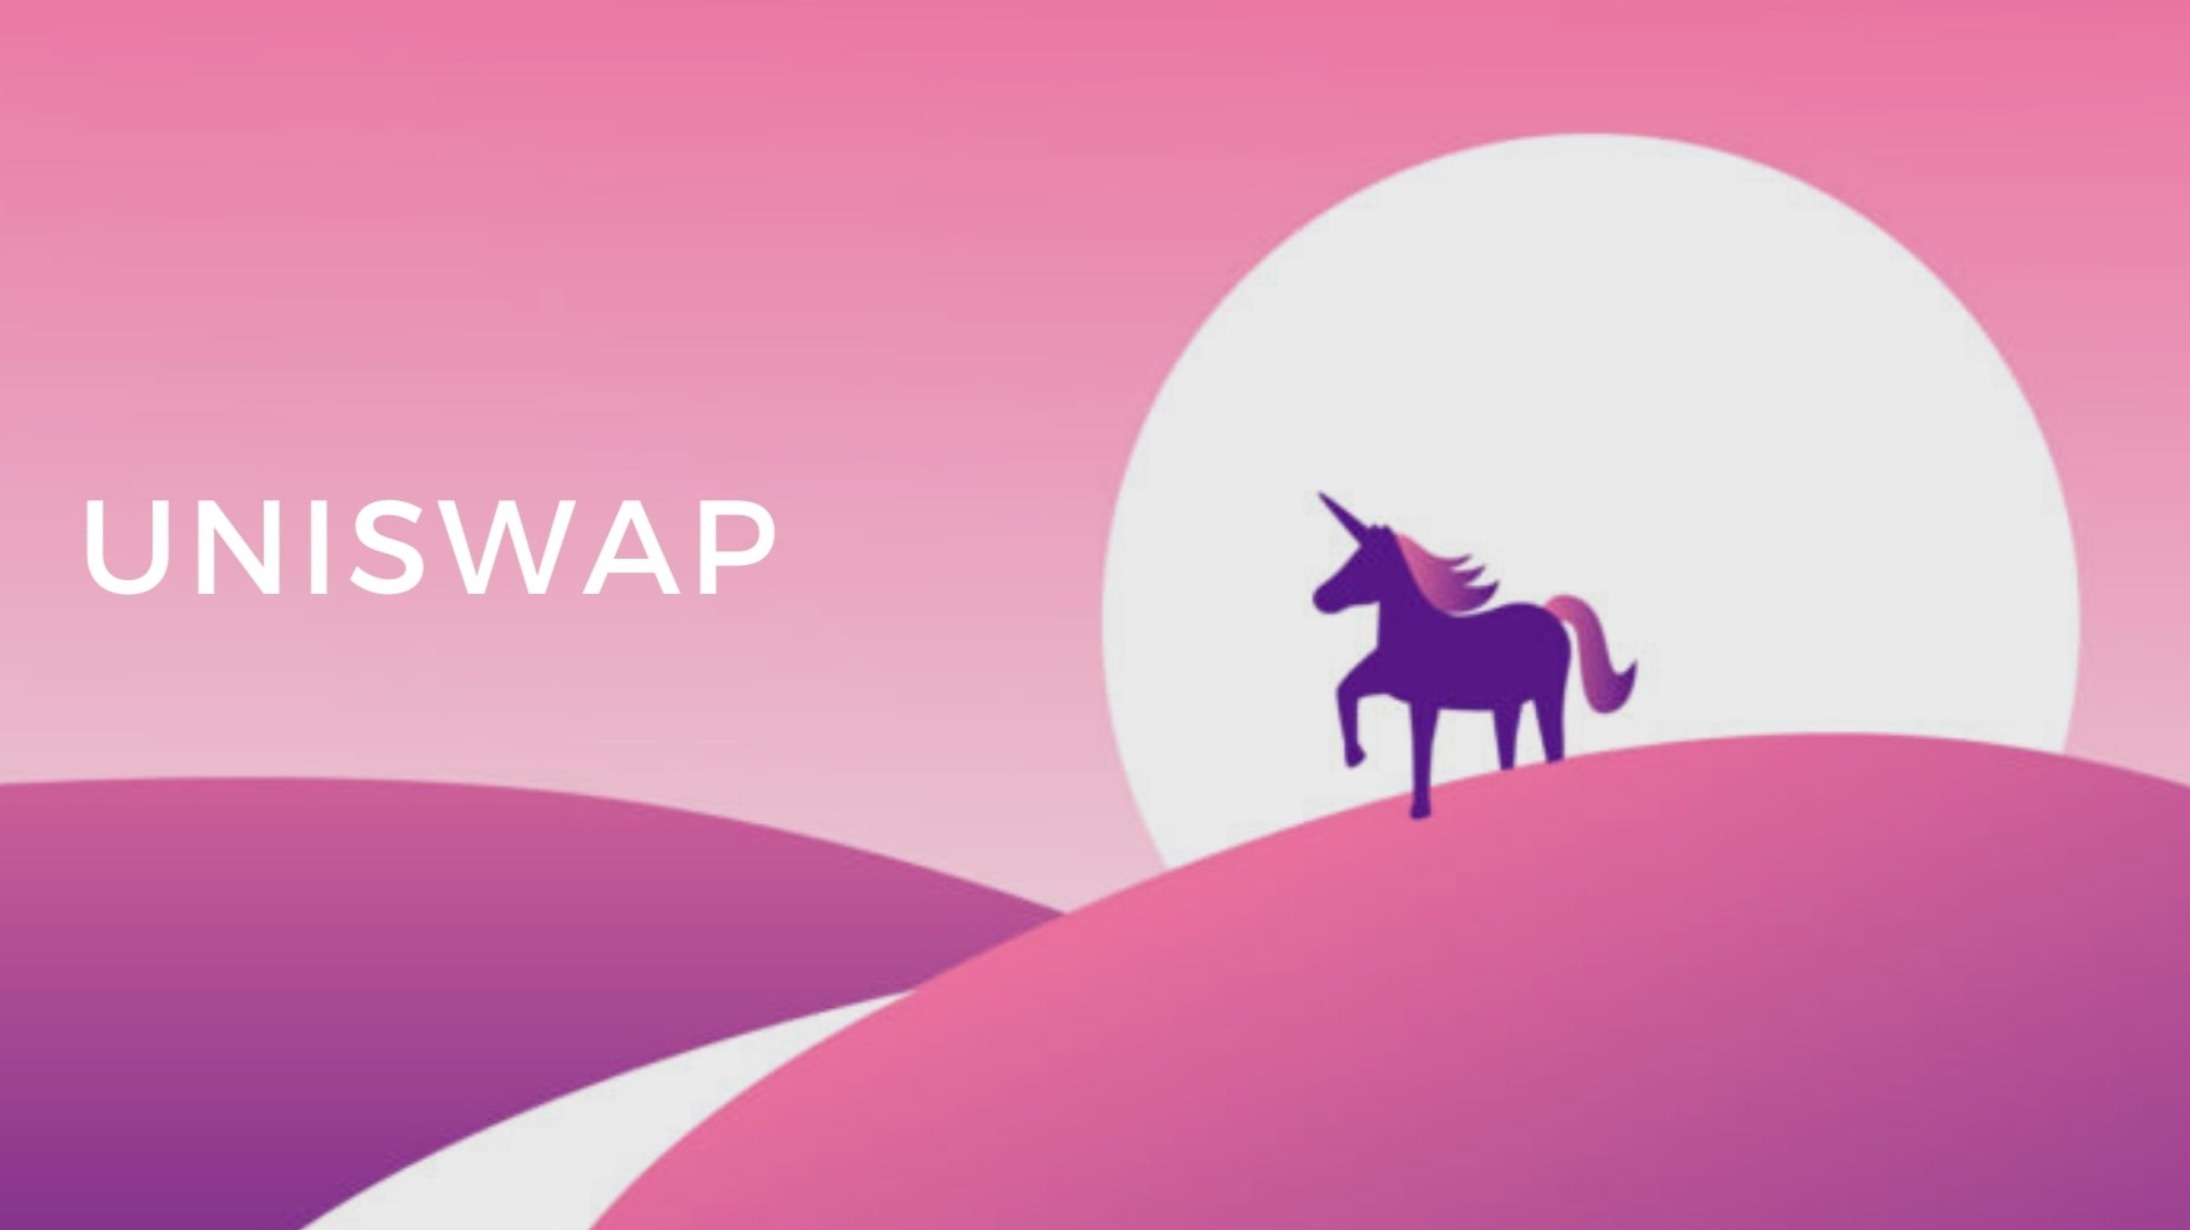 Uniswap is giving out tokens. Coin distribution details